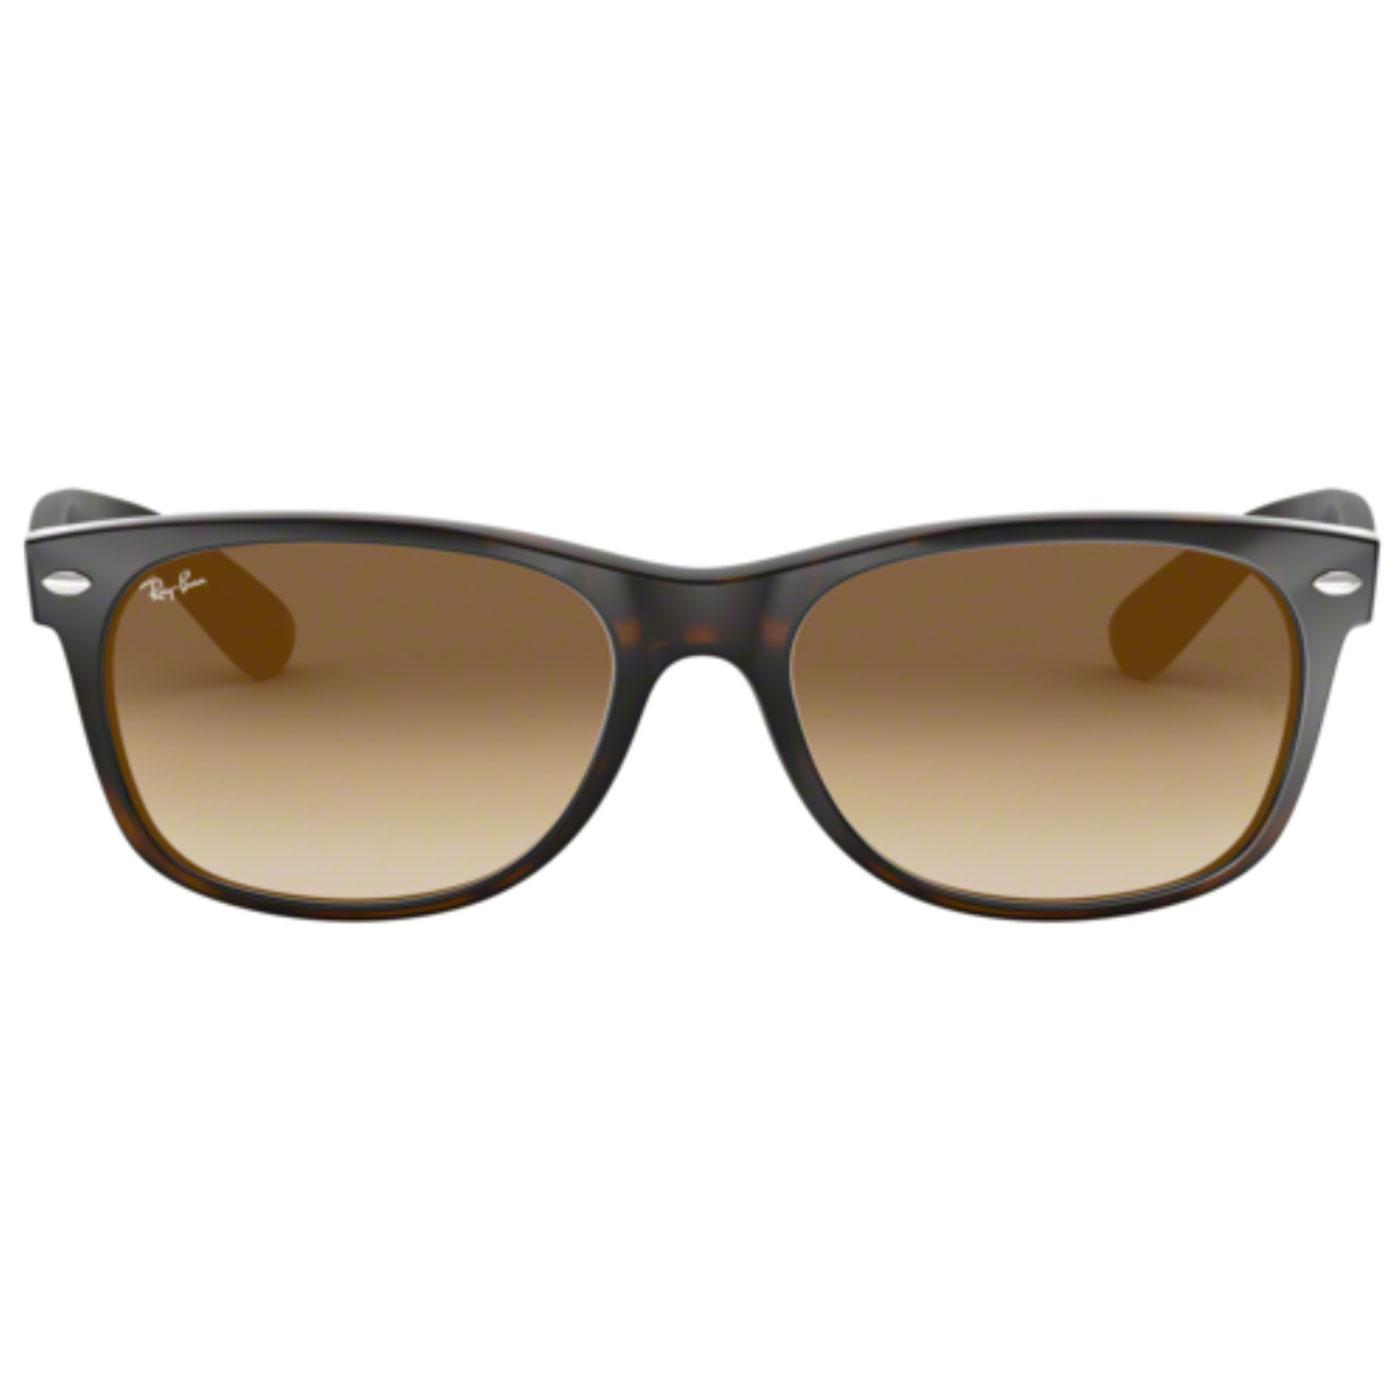 82dd01582 RAY-BAN New Wayfarer Retro Mod Sunglasses Havana/Brown Gradient